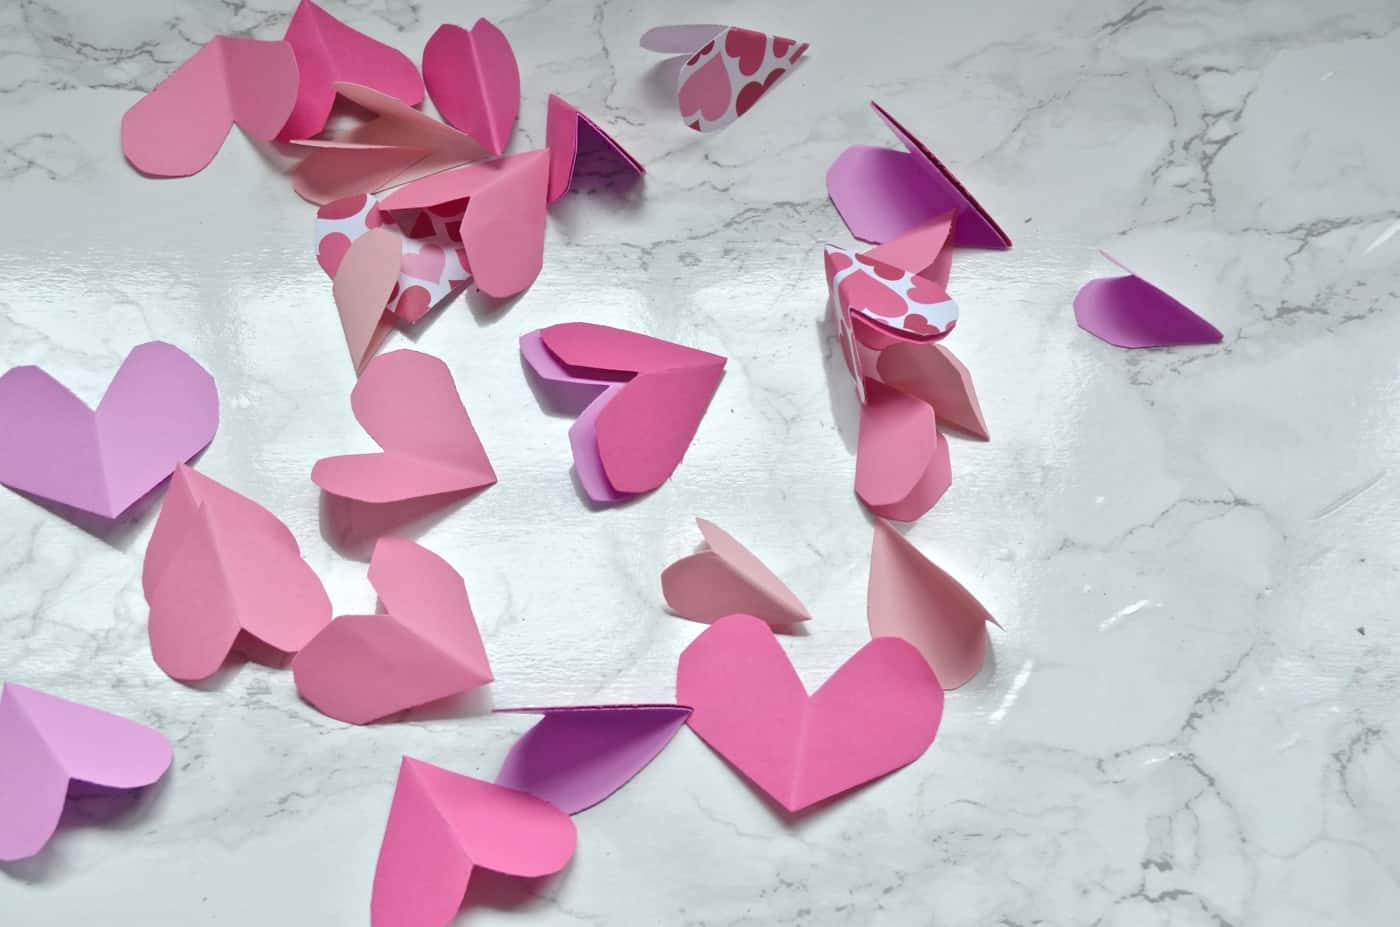 Simple and fast valentine's day crafts for under $1.